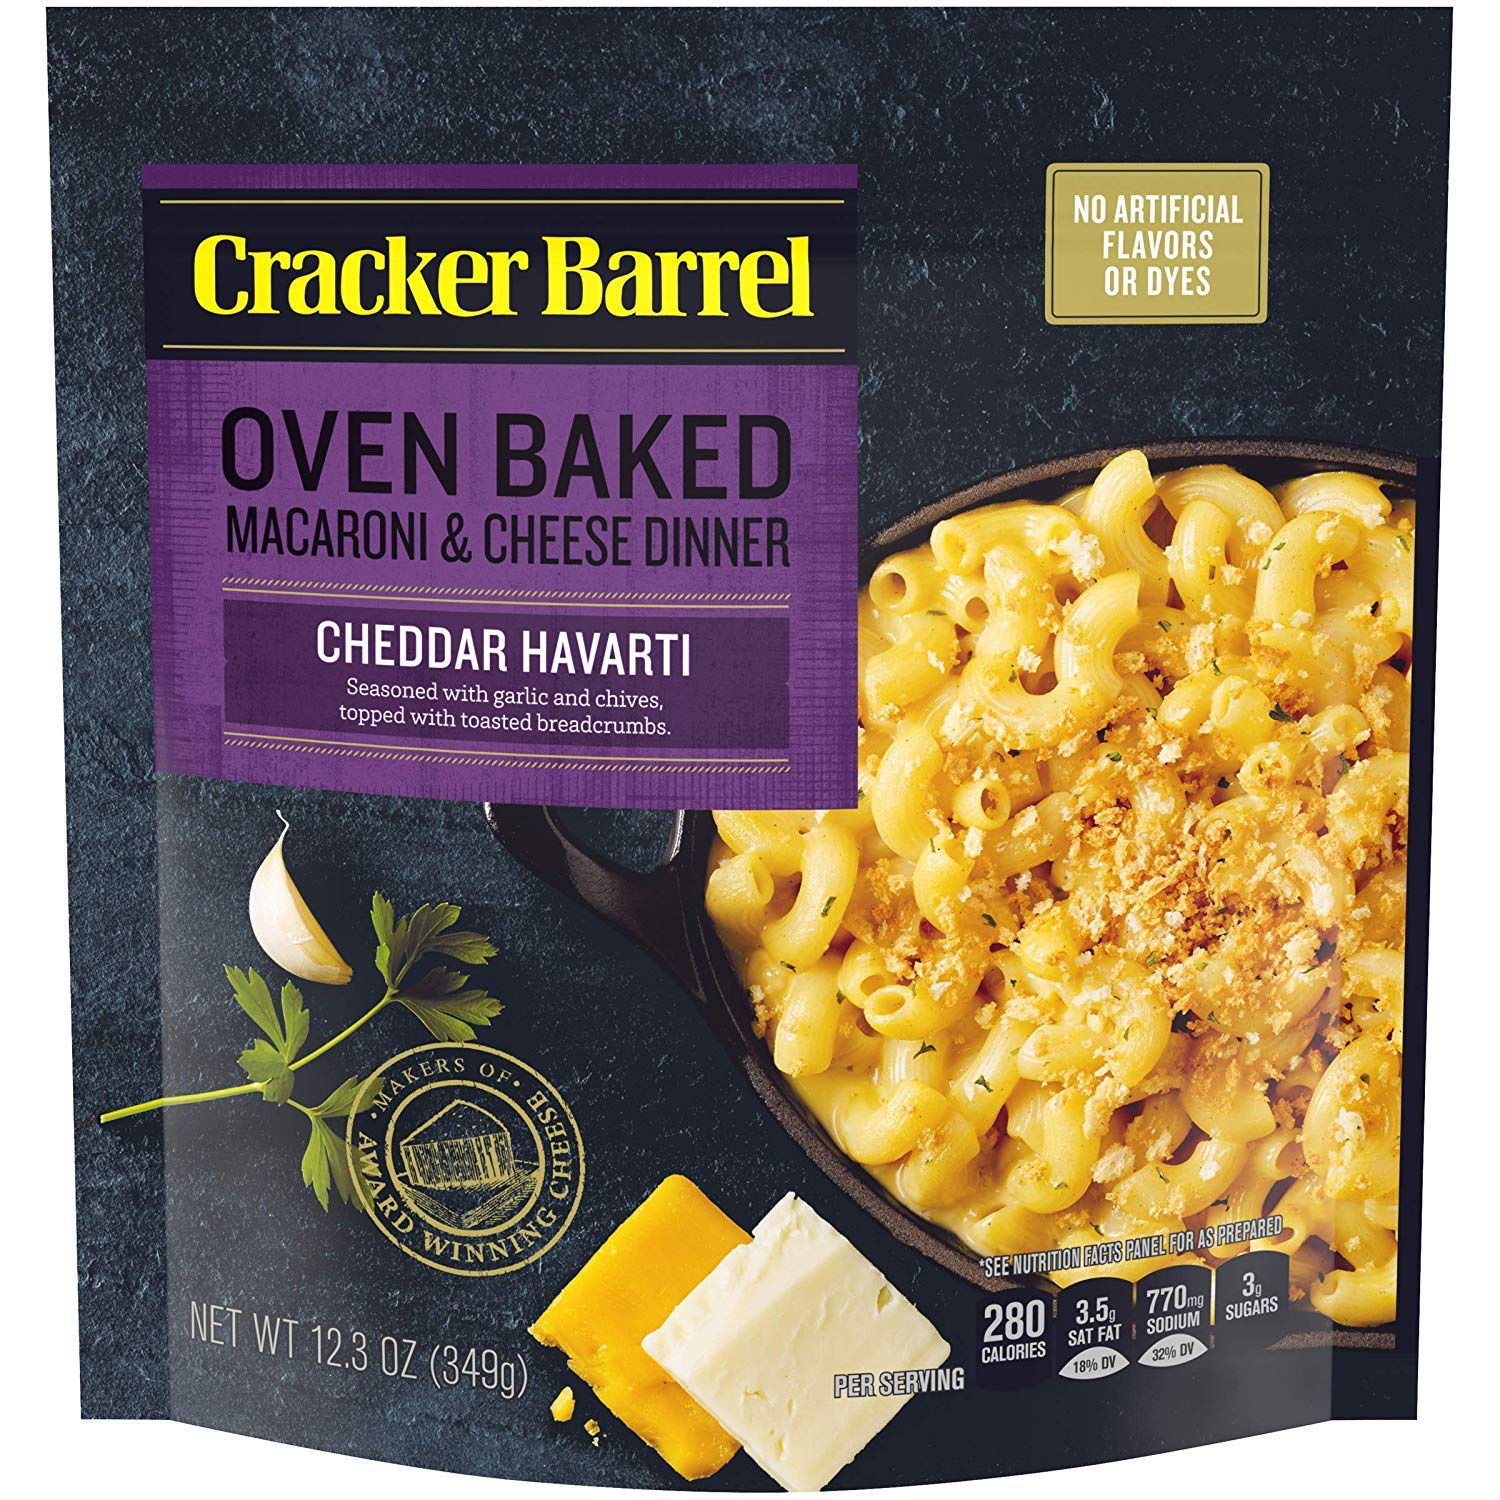 Cracker Barrel Oven Baked Havarti Macaroni and Cheese Dinner, 12.3 oz Pouch (4)